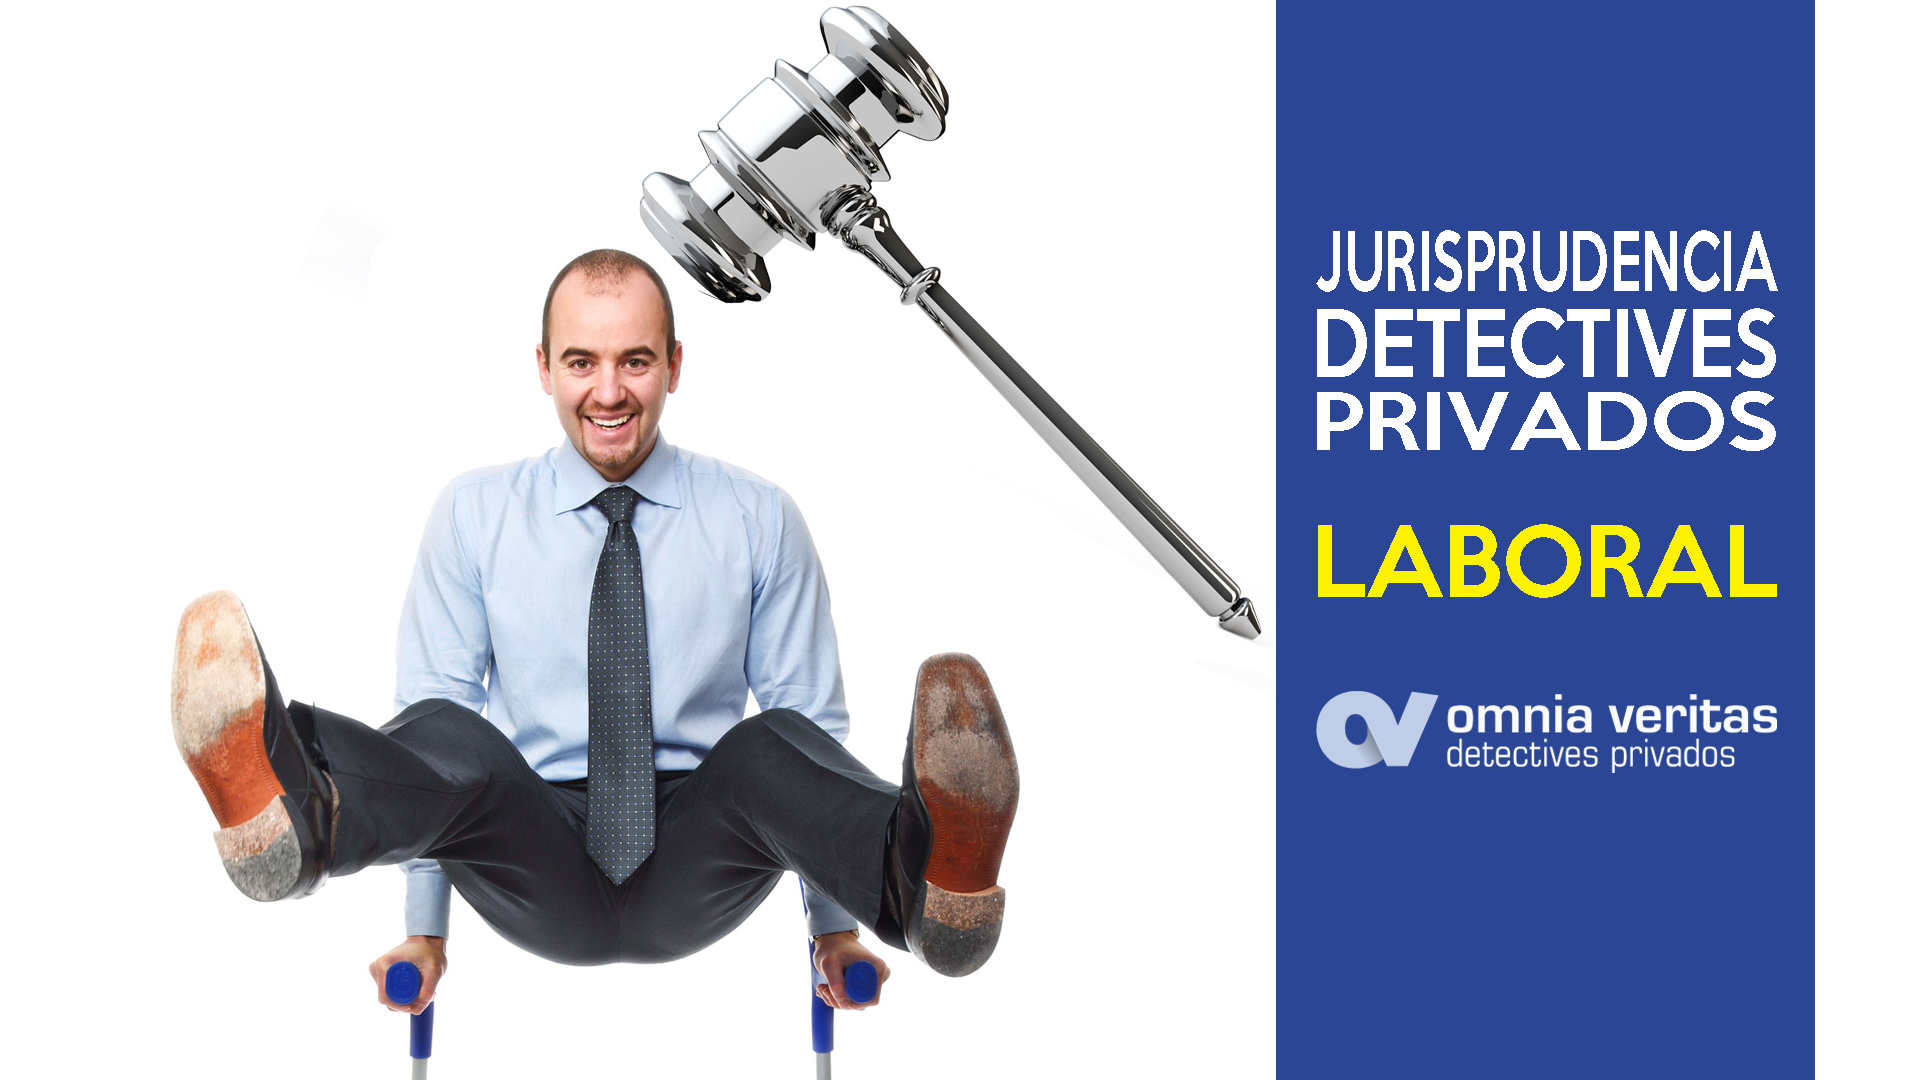 Jurisprudencia Laboral Detectives Privados